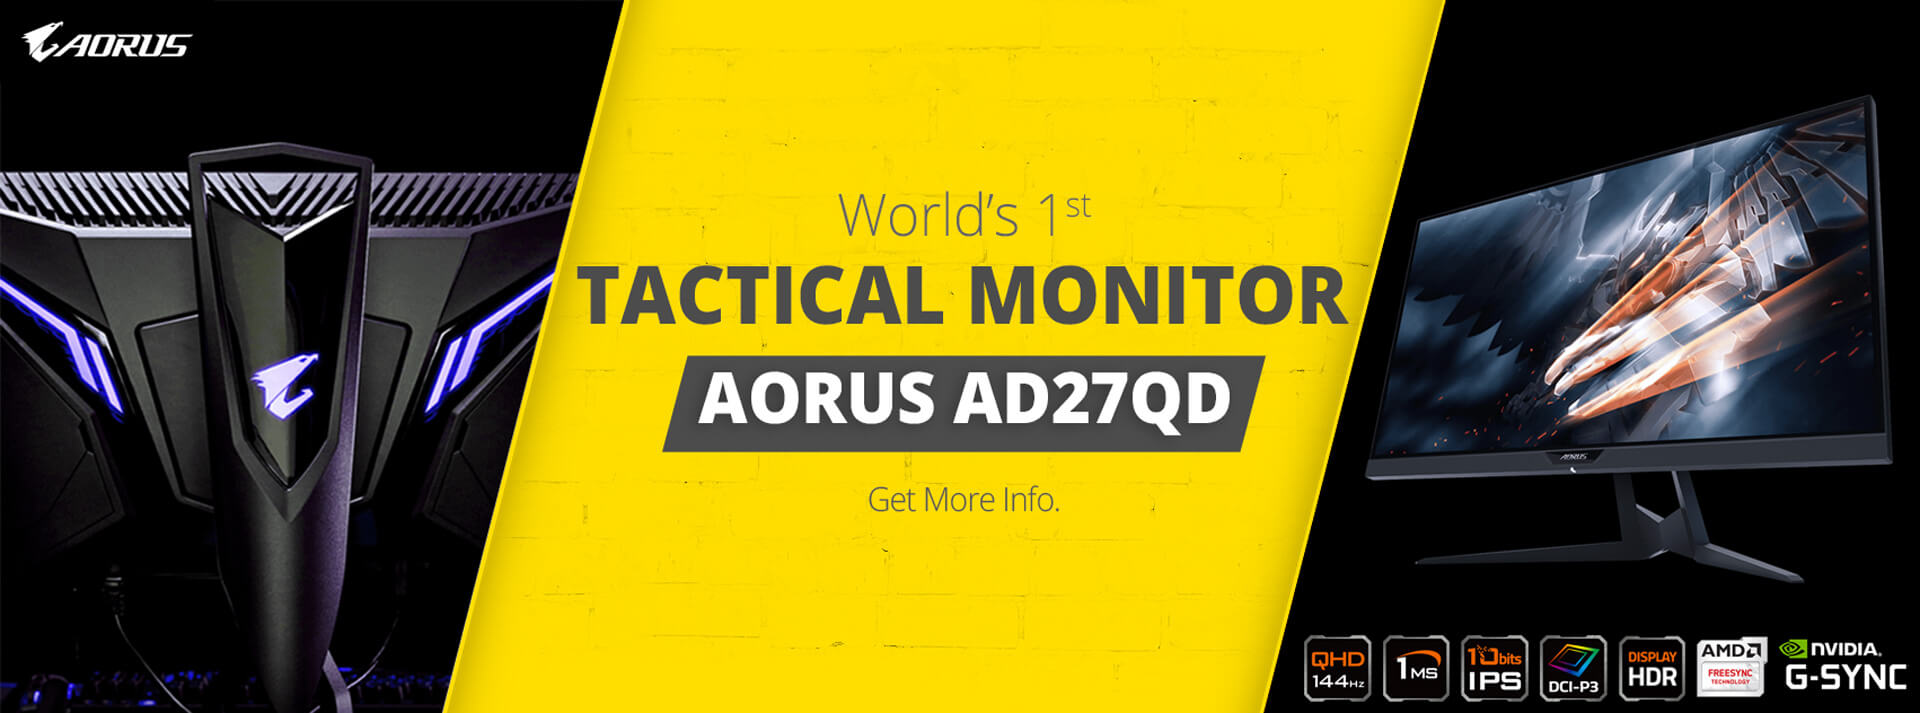 Buy Gigabyte Aorus AS27QD Tactical Gaming Monitor at Lowest Price India - Mdcomputers.in